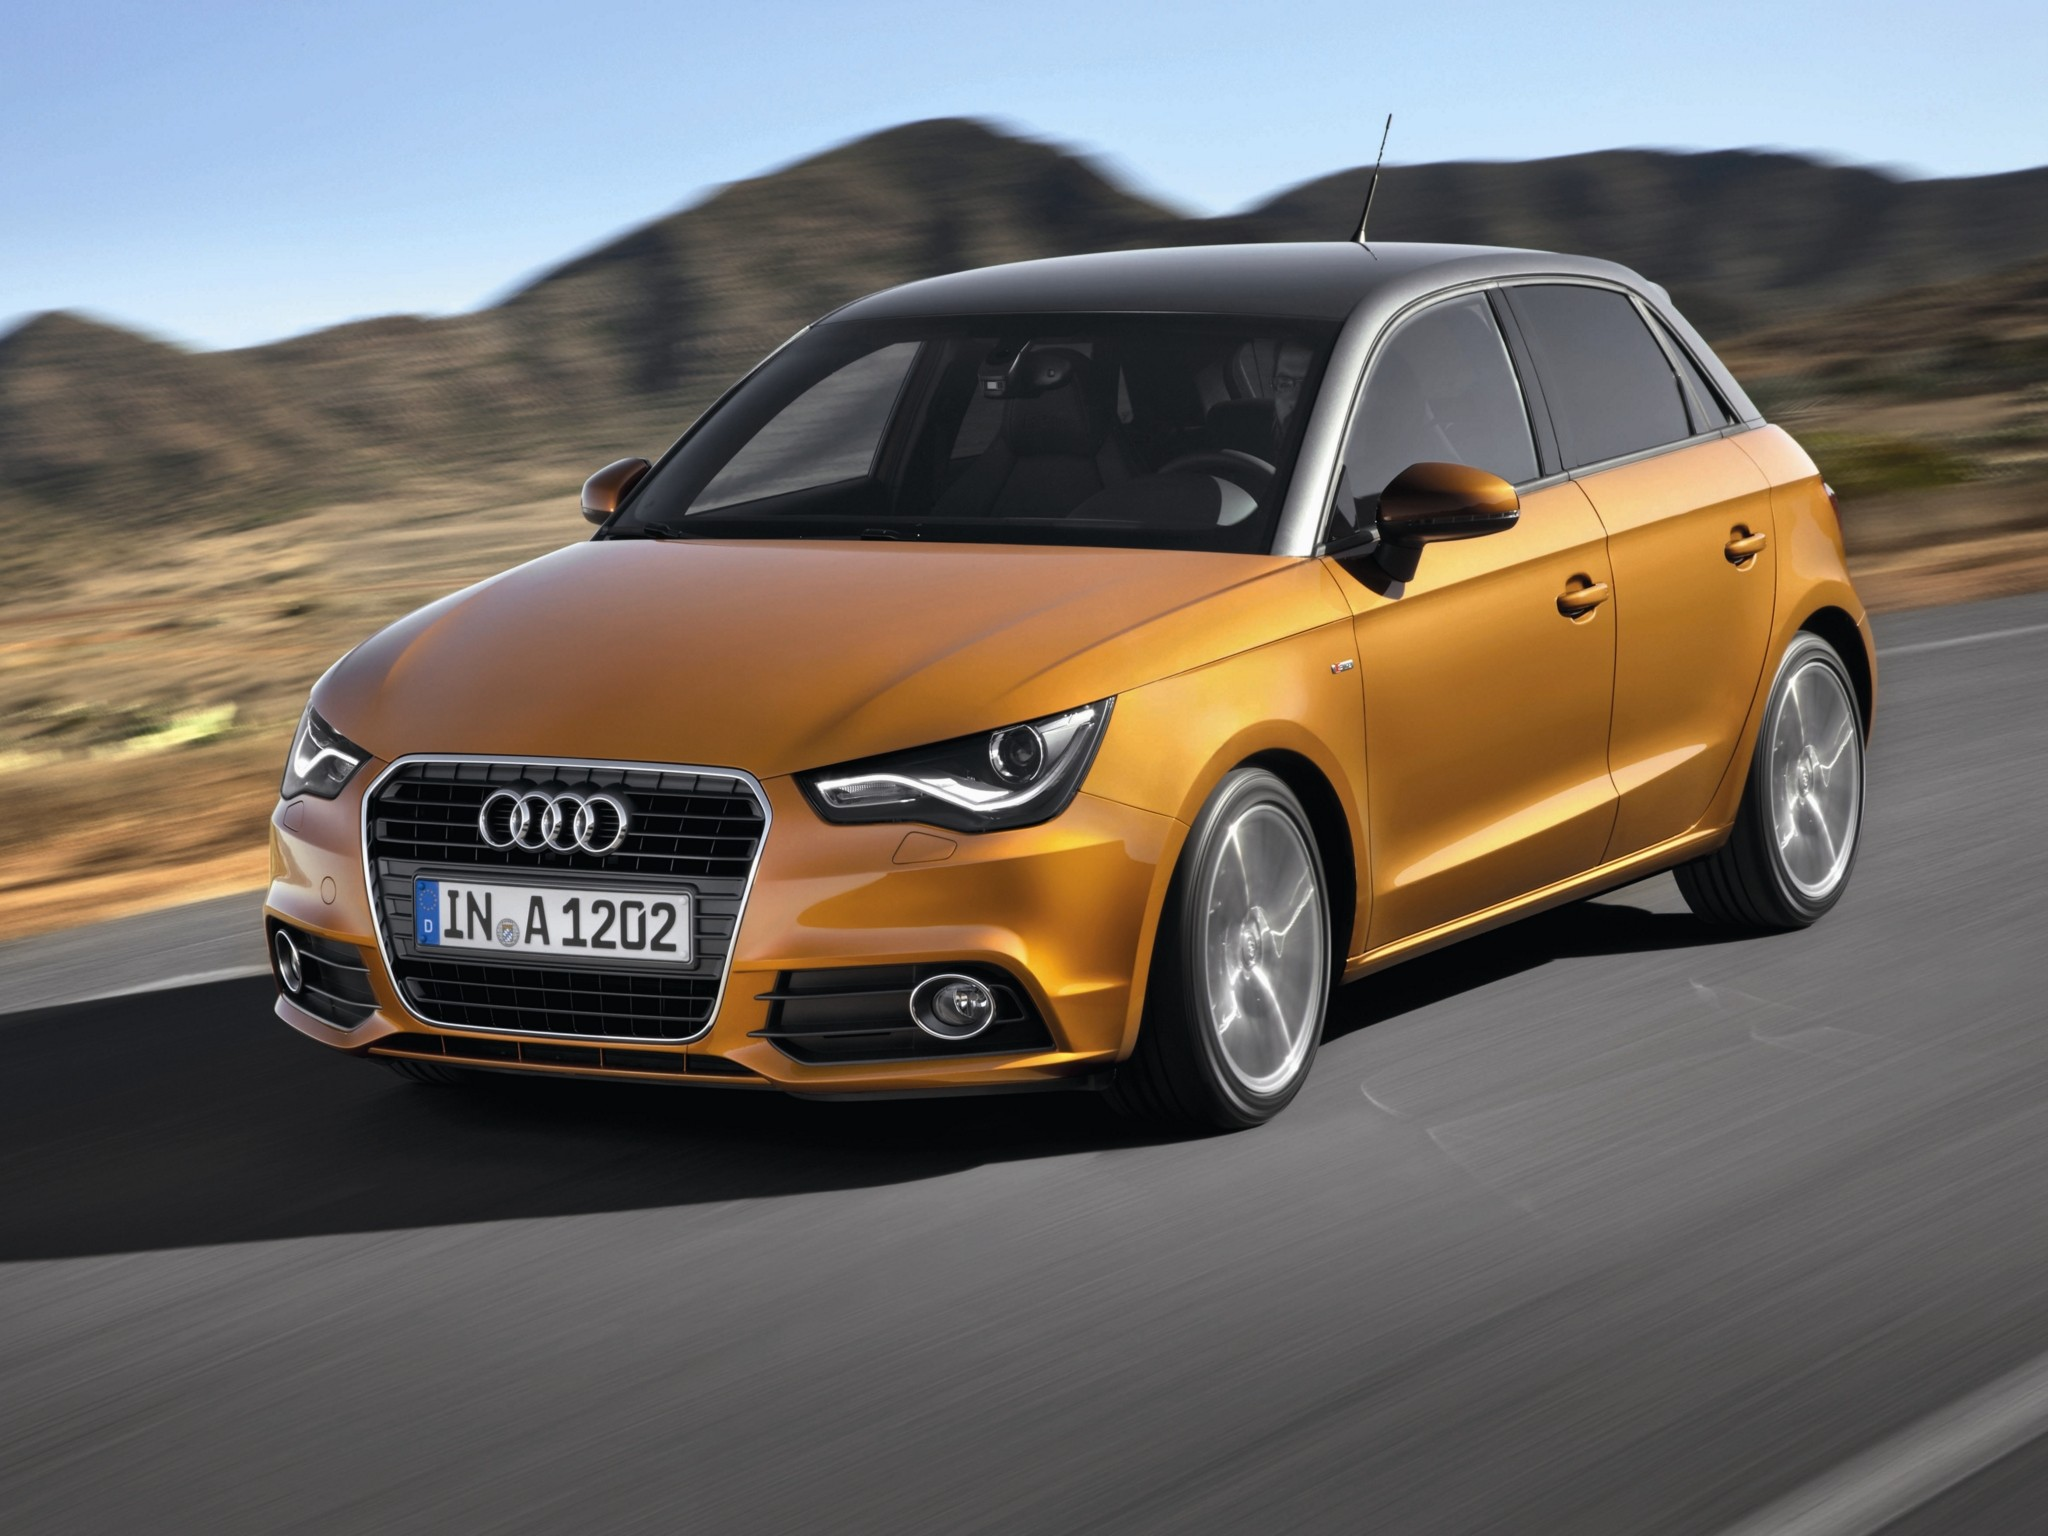 Audi A1 2018 Release All New Car Date 2019 2020 2014 Nissan Nv Stereo Wiring Diagram Sportback 5 Doors Specs 2012